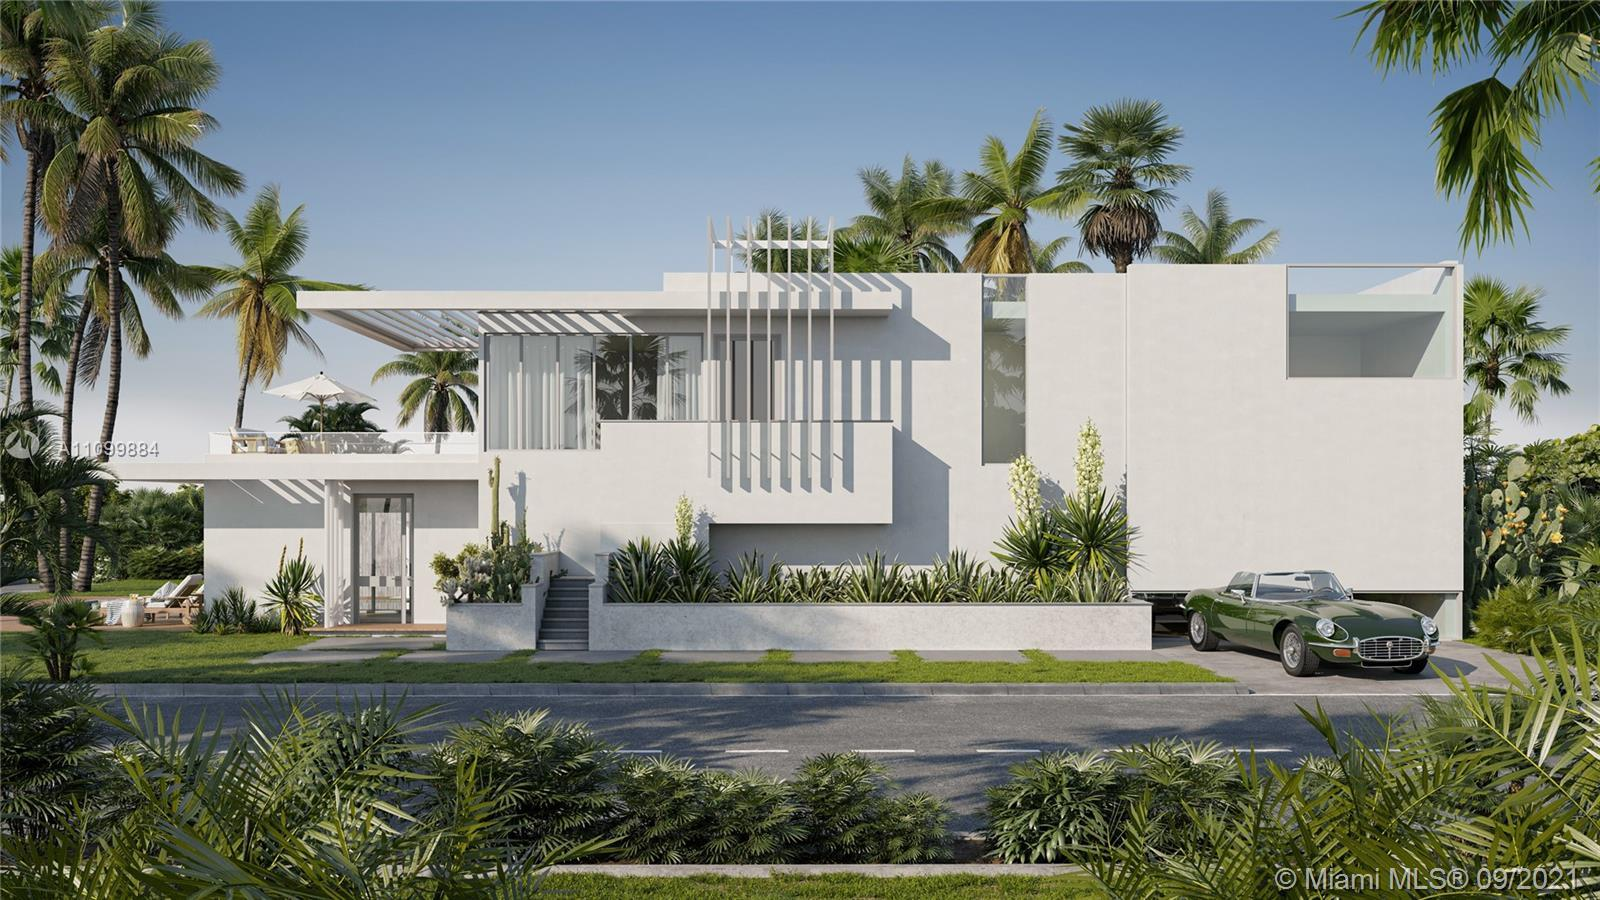 Opportunity to renovate creatively in the highly sought-after community of Surfside! This two-story